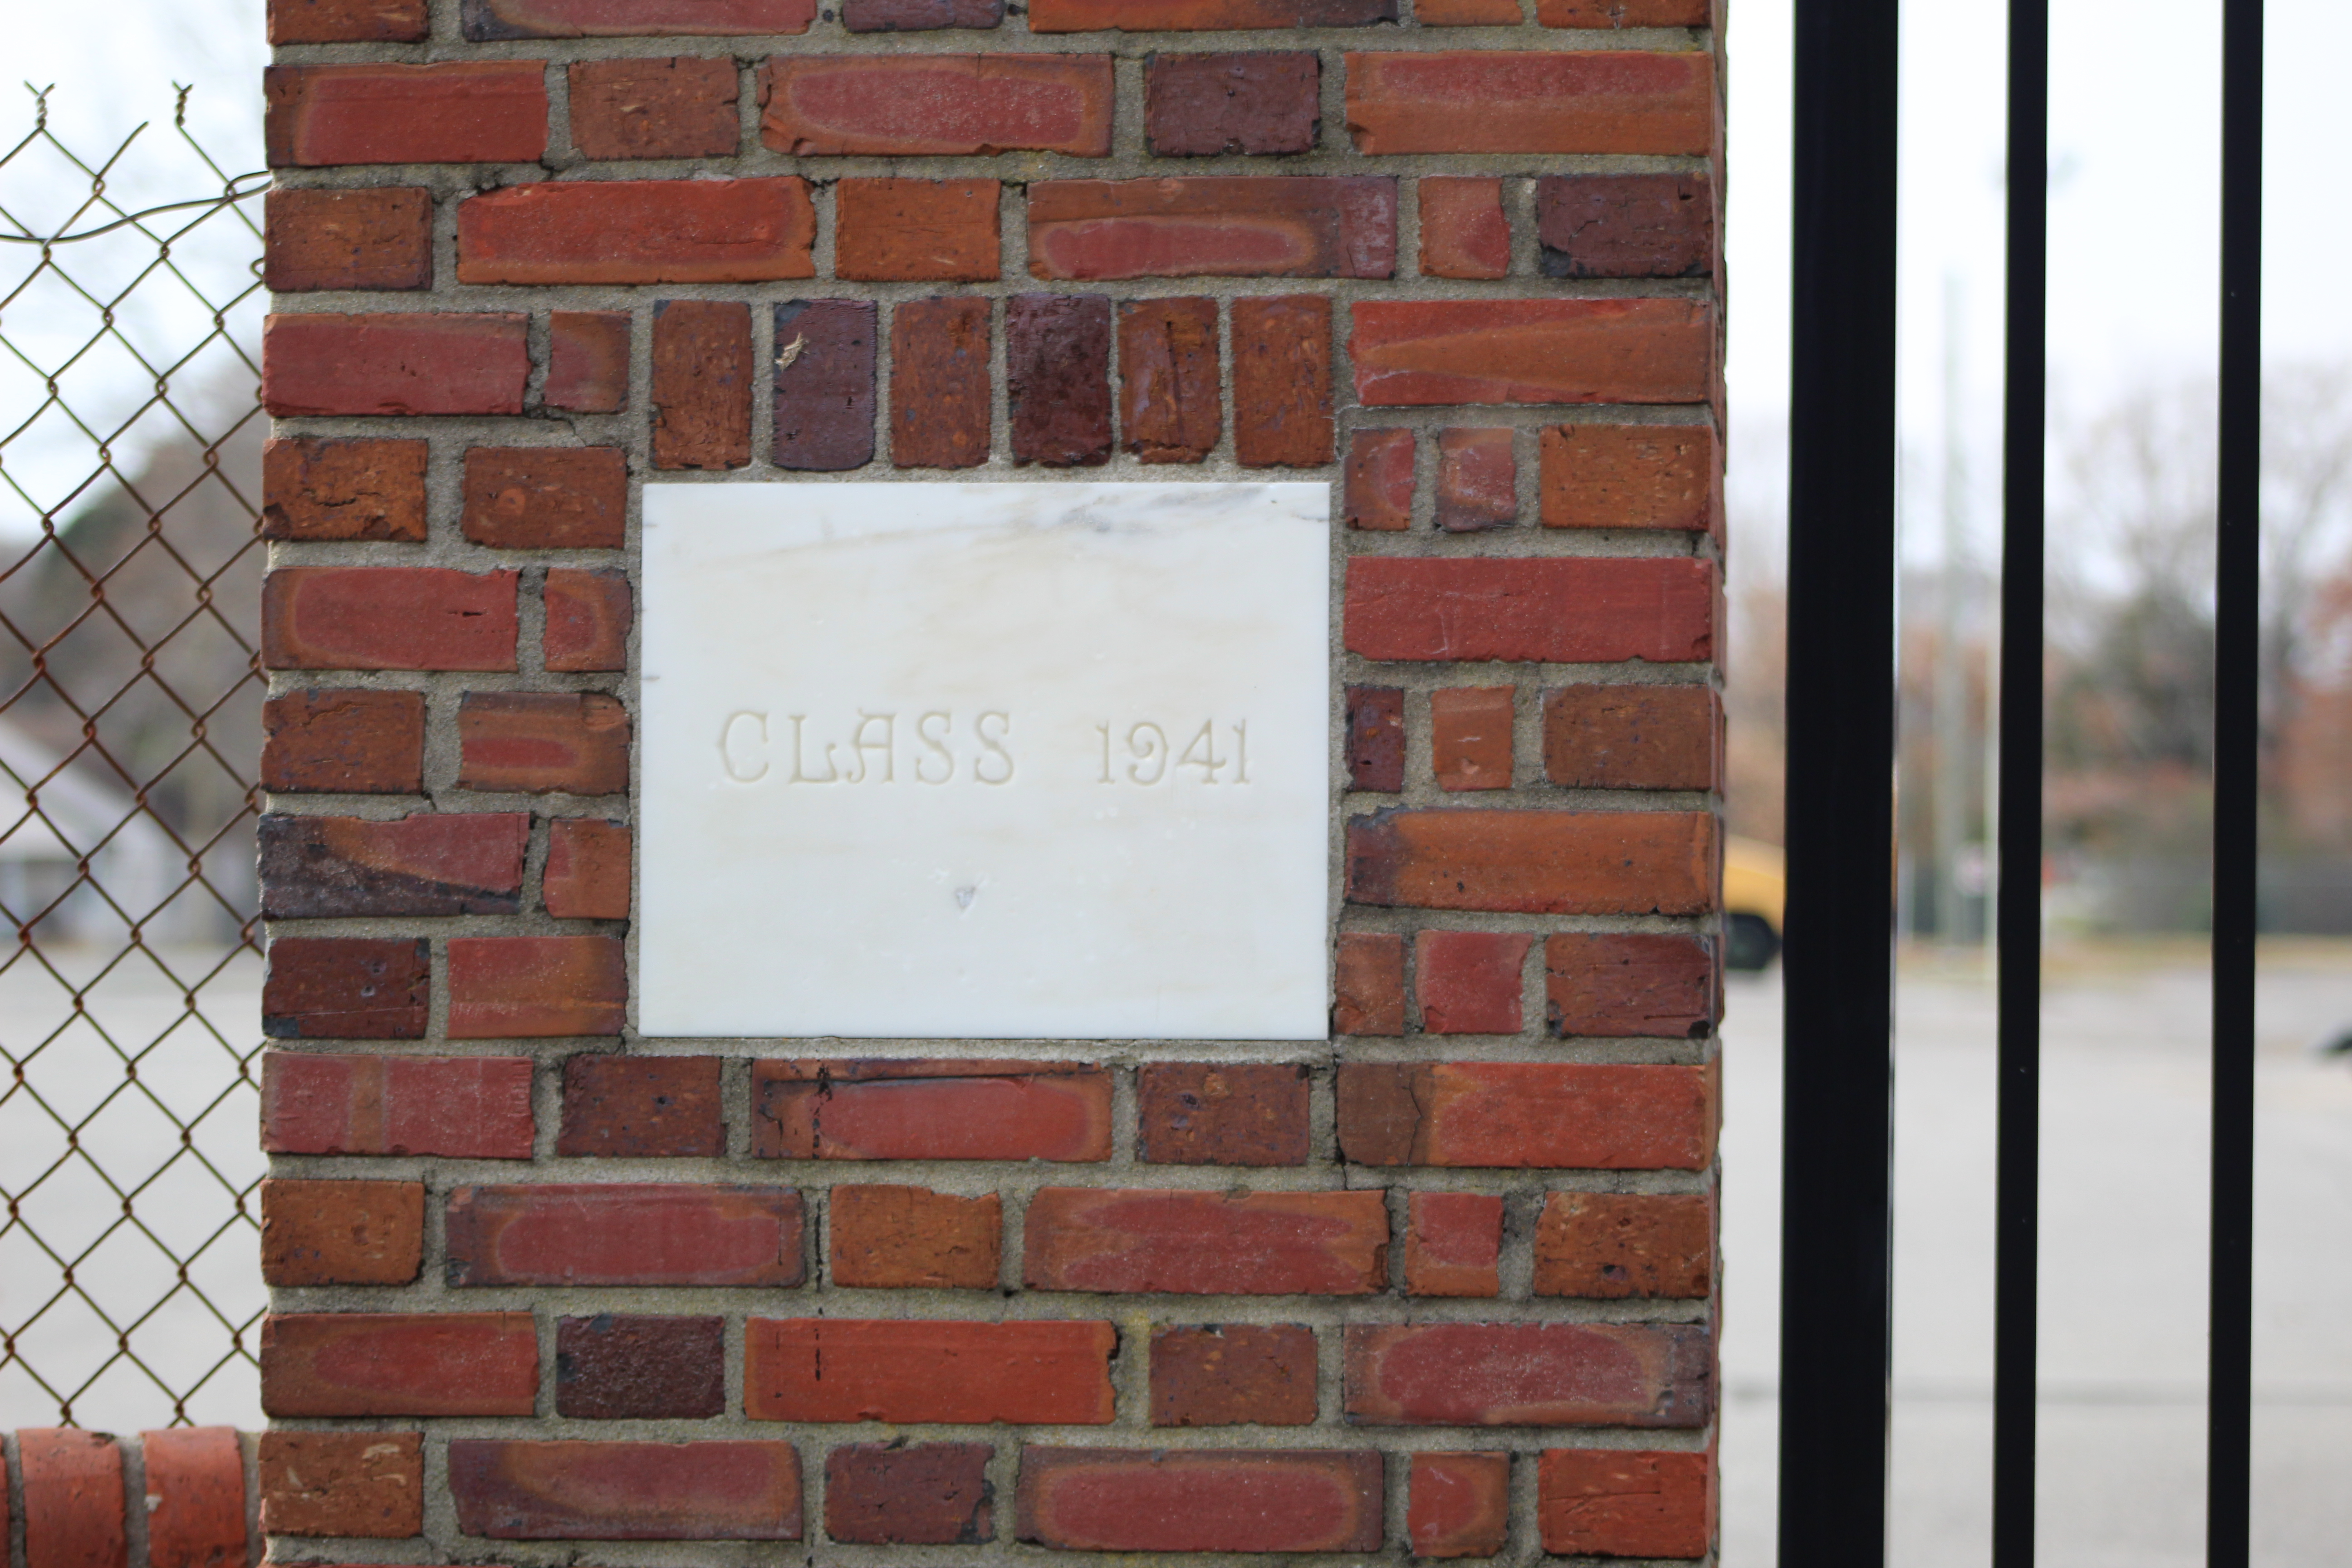 Class of 1941 plaque on the southern pillar